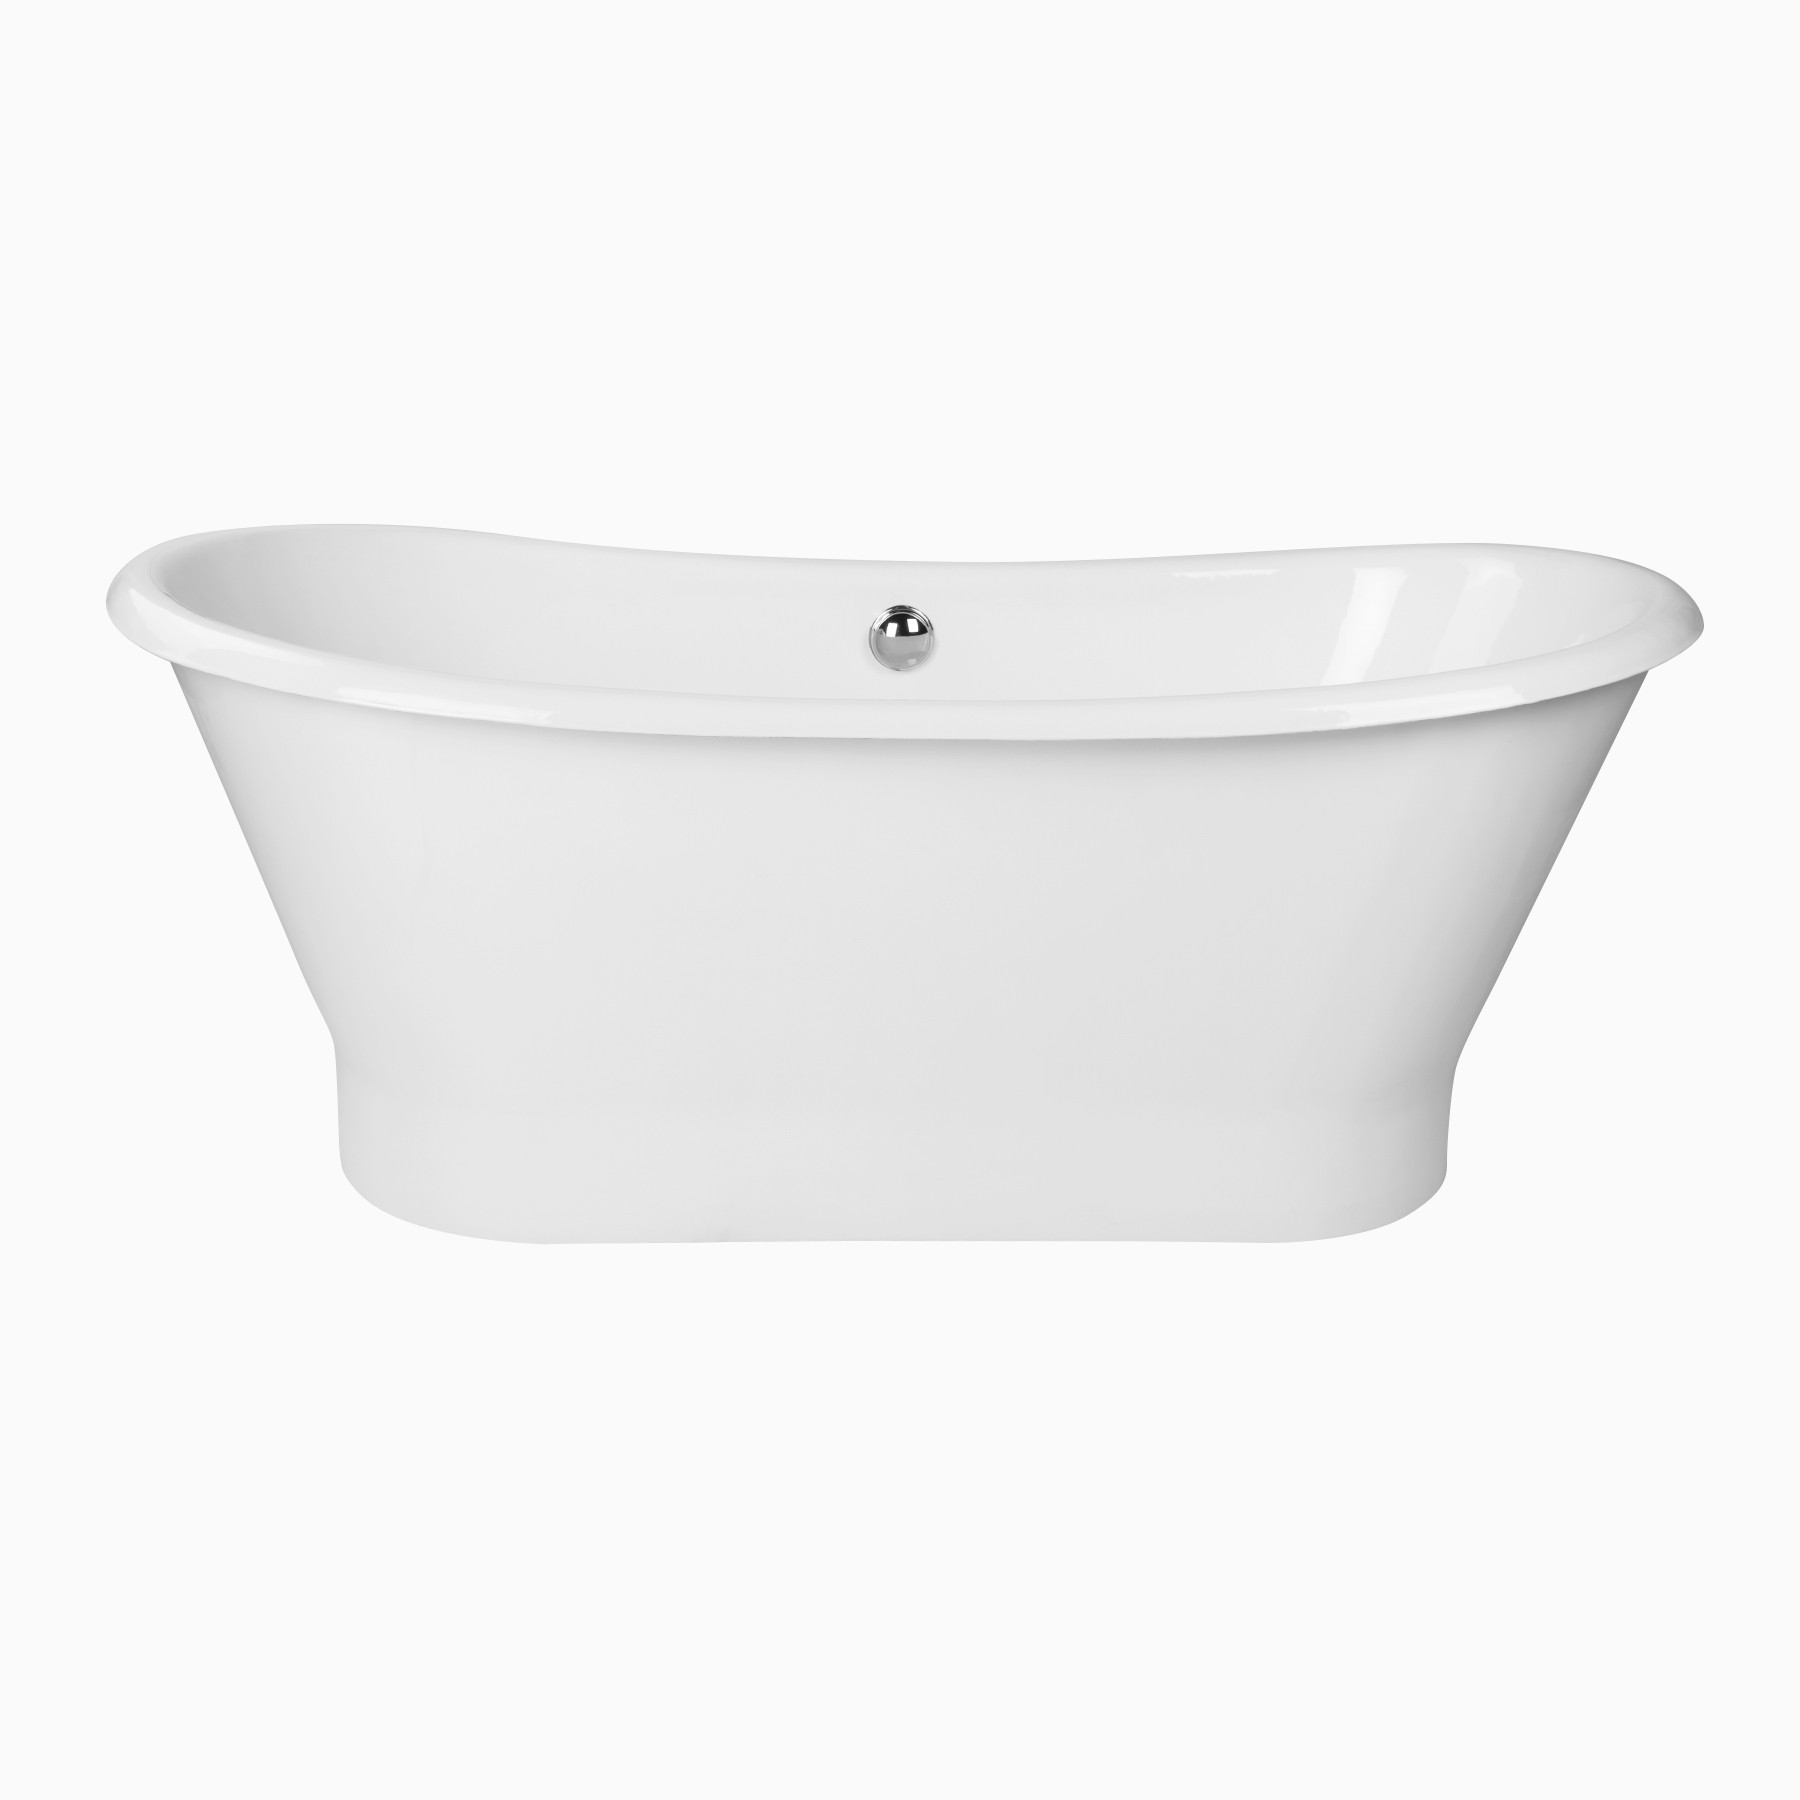 70  Montebello Freestanding Bathtub Cast Iron Transitional Oval Tub